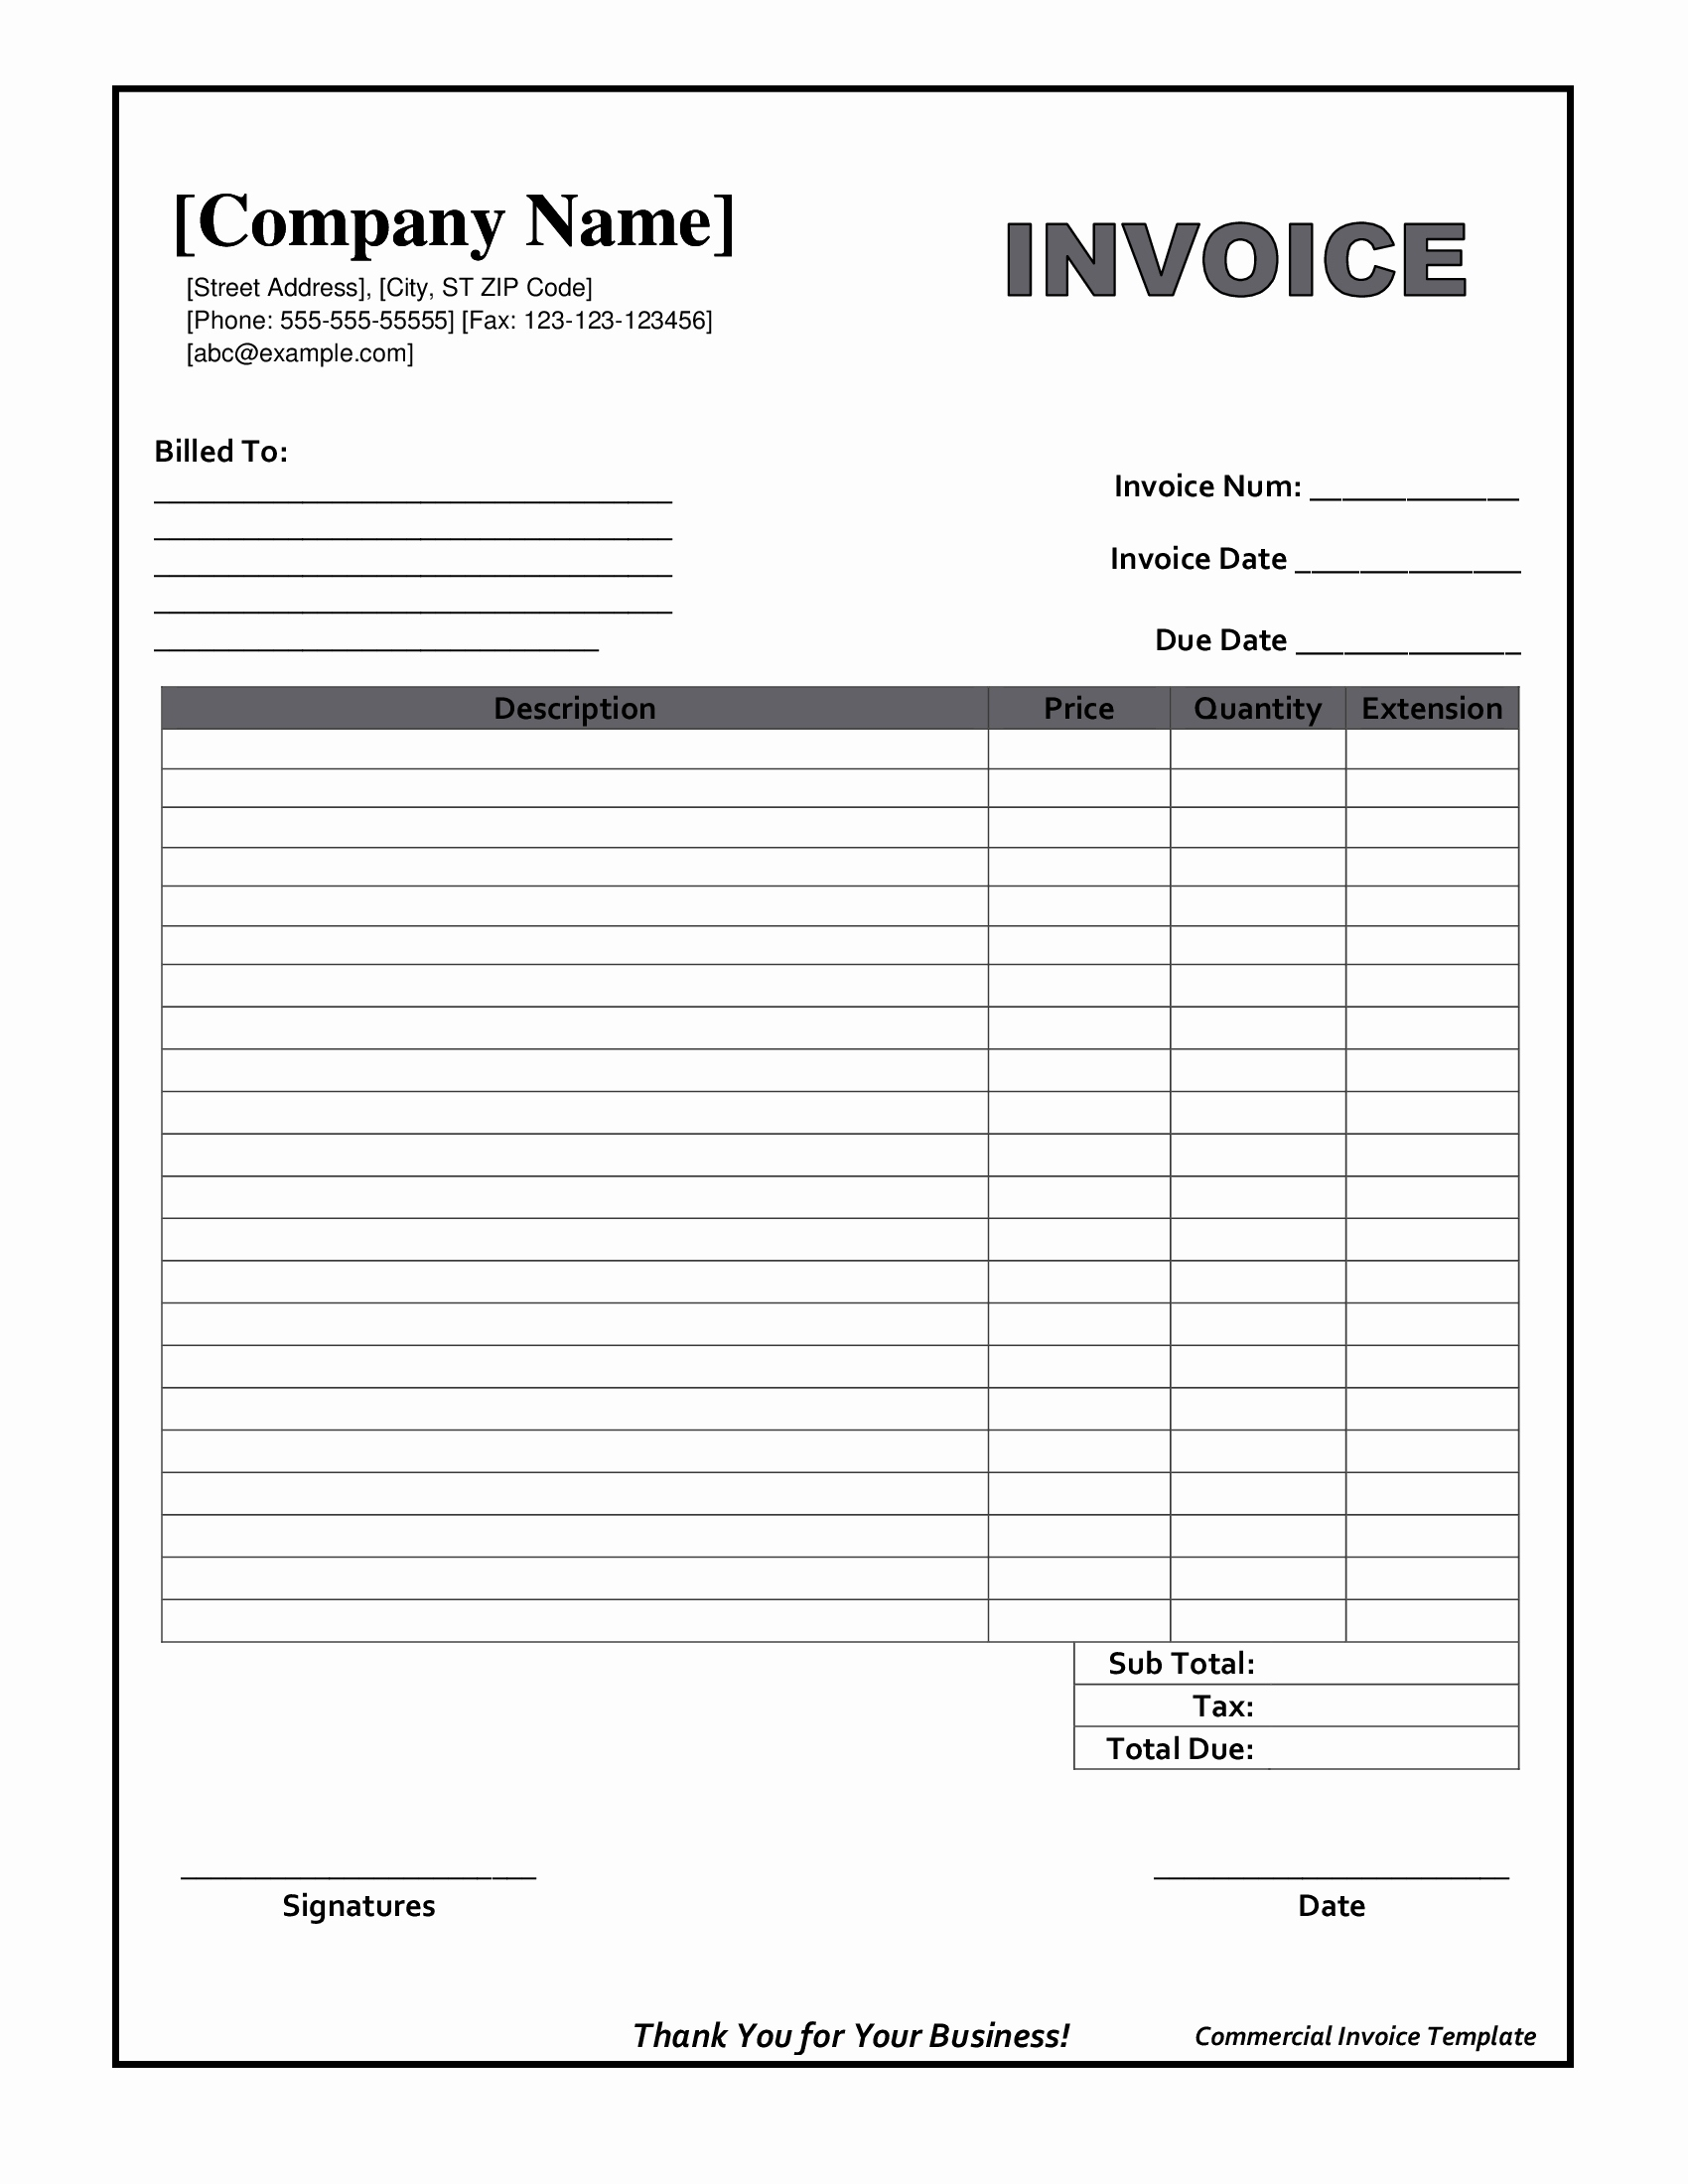 Blank Invoice Template Word Inspirational Free Printable Doctor Forms Swachata Abhiyan Essay In Gujarati